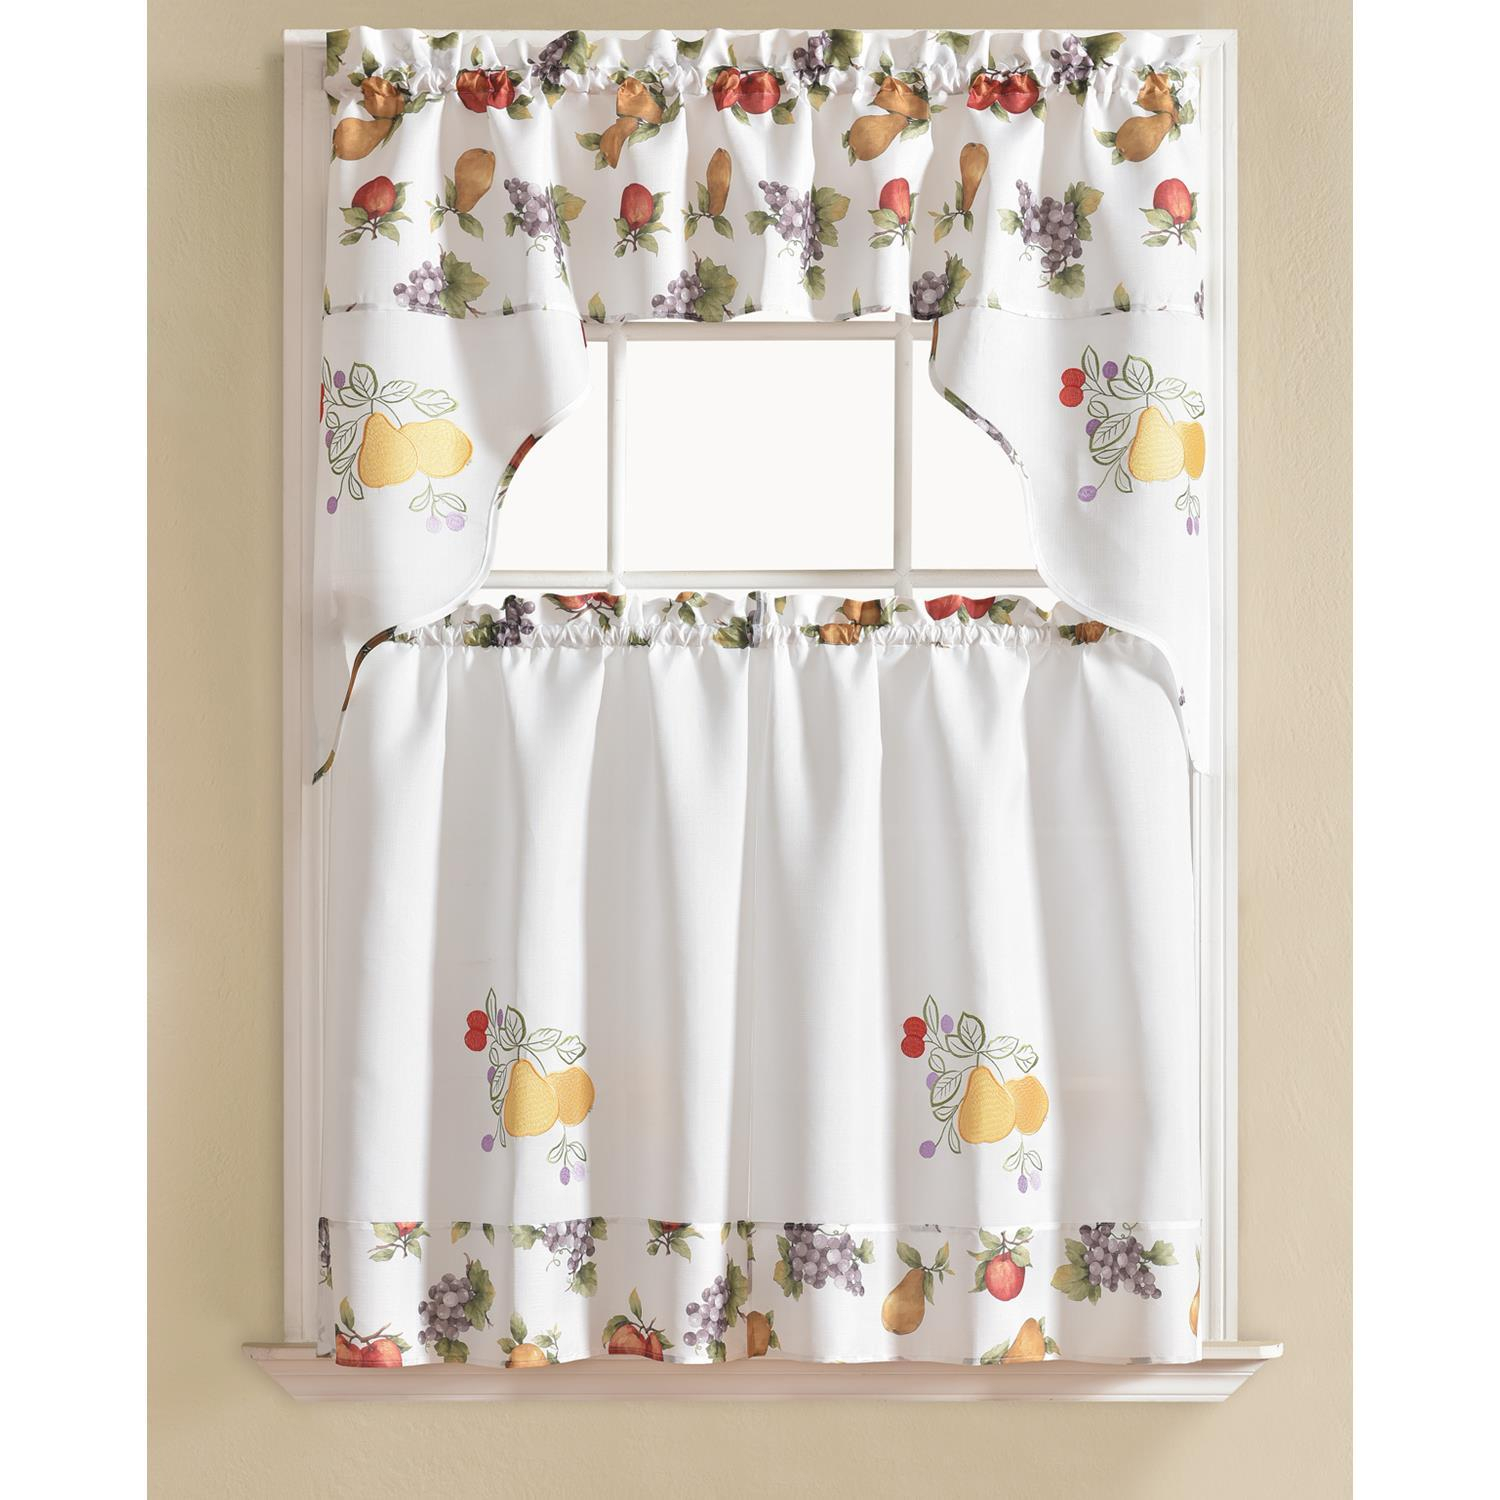 Urban Embroidered Pear Tier And Valance Kitchen Curtain Set Inside Coffee Embroidered Kitchen Curtain Tier Sets (View 17 of 20)